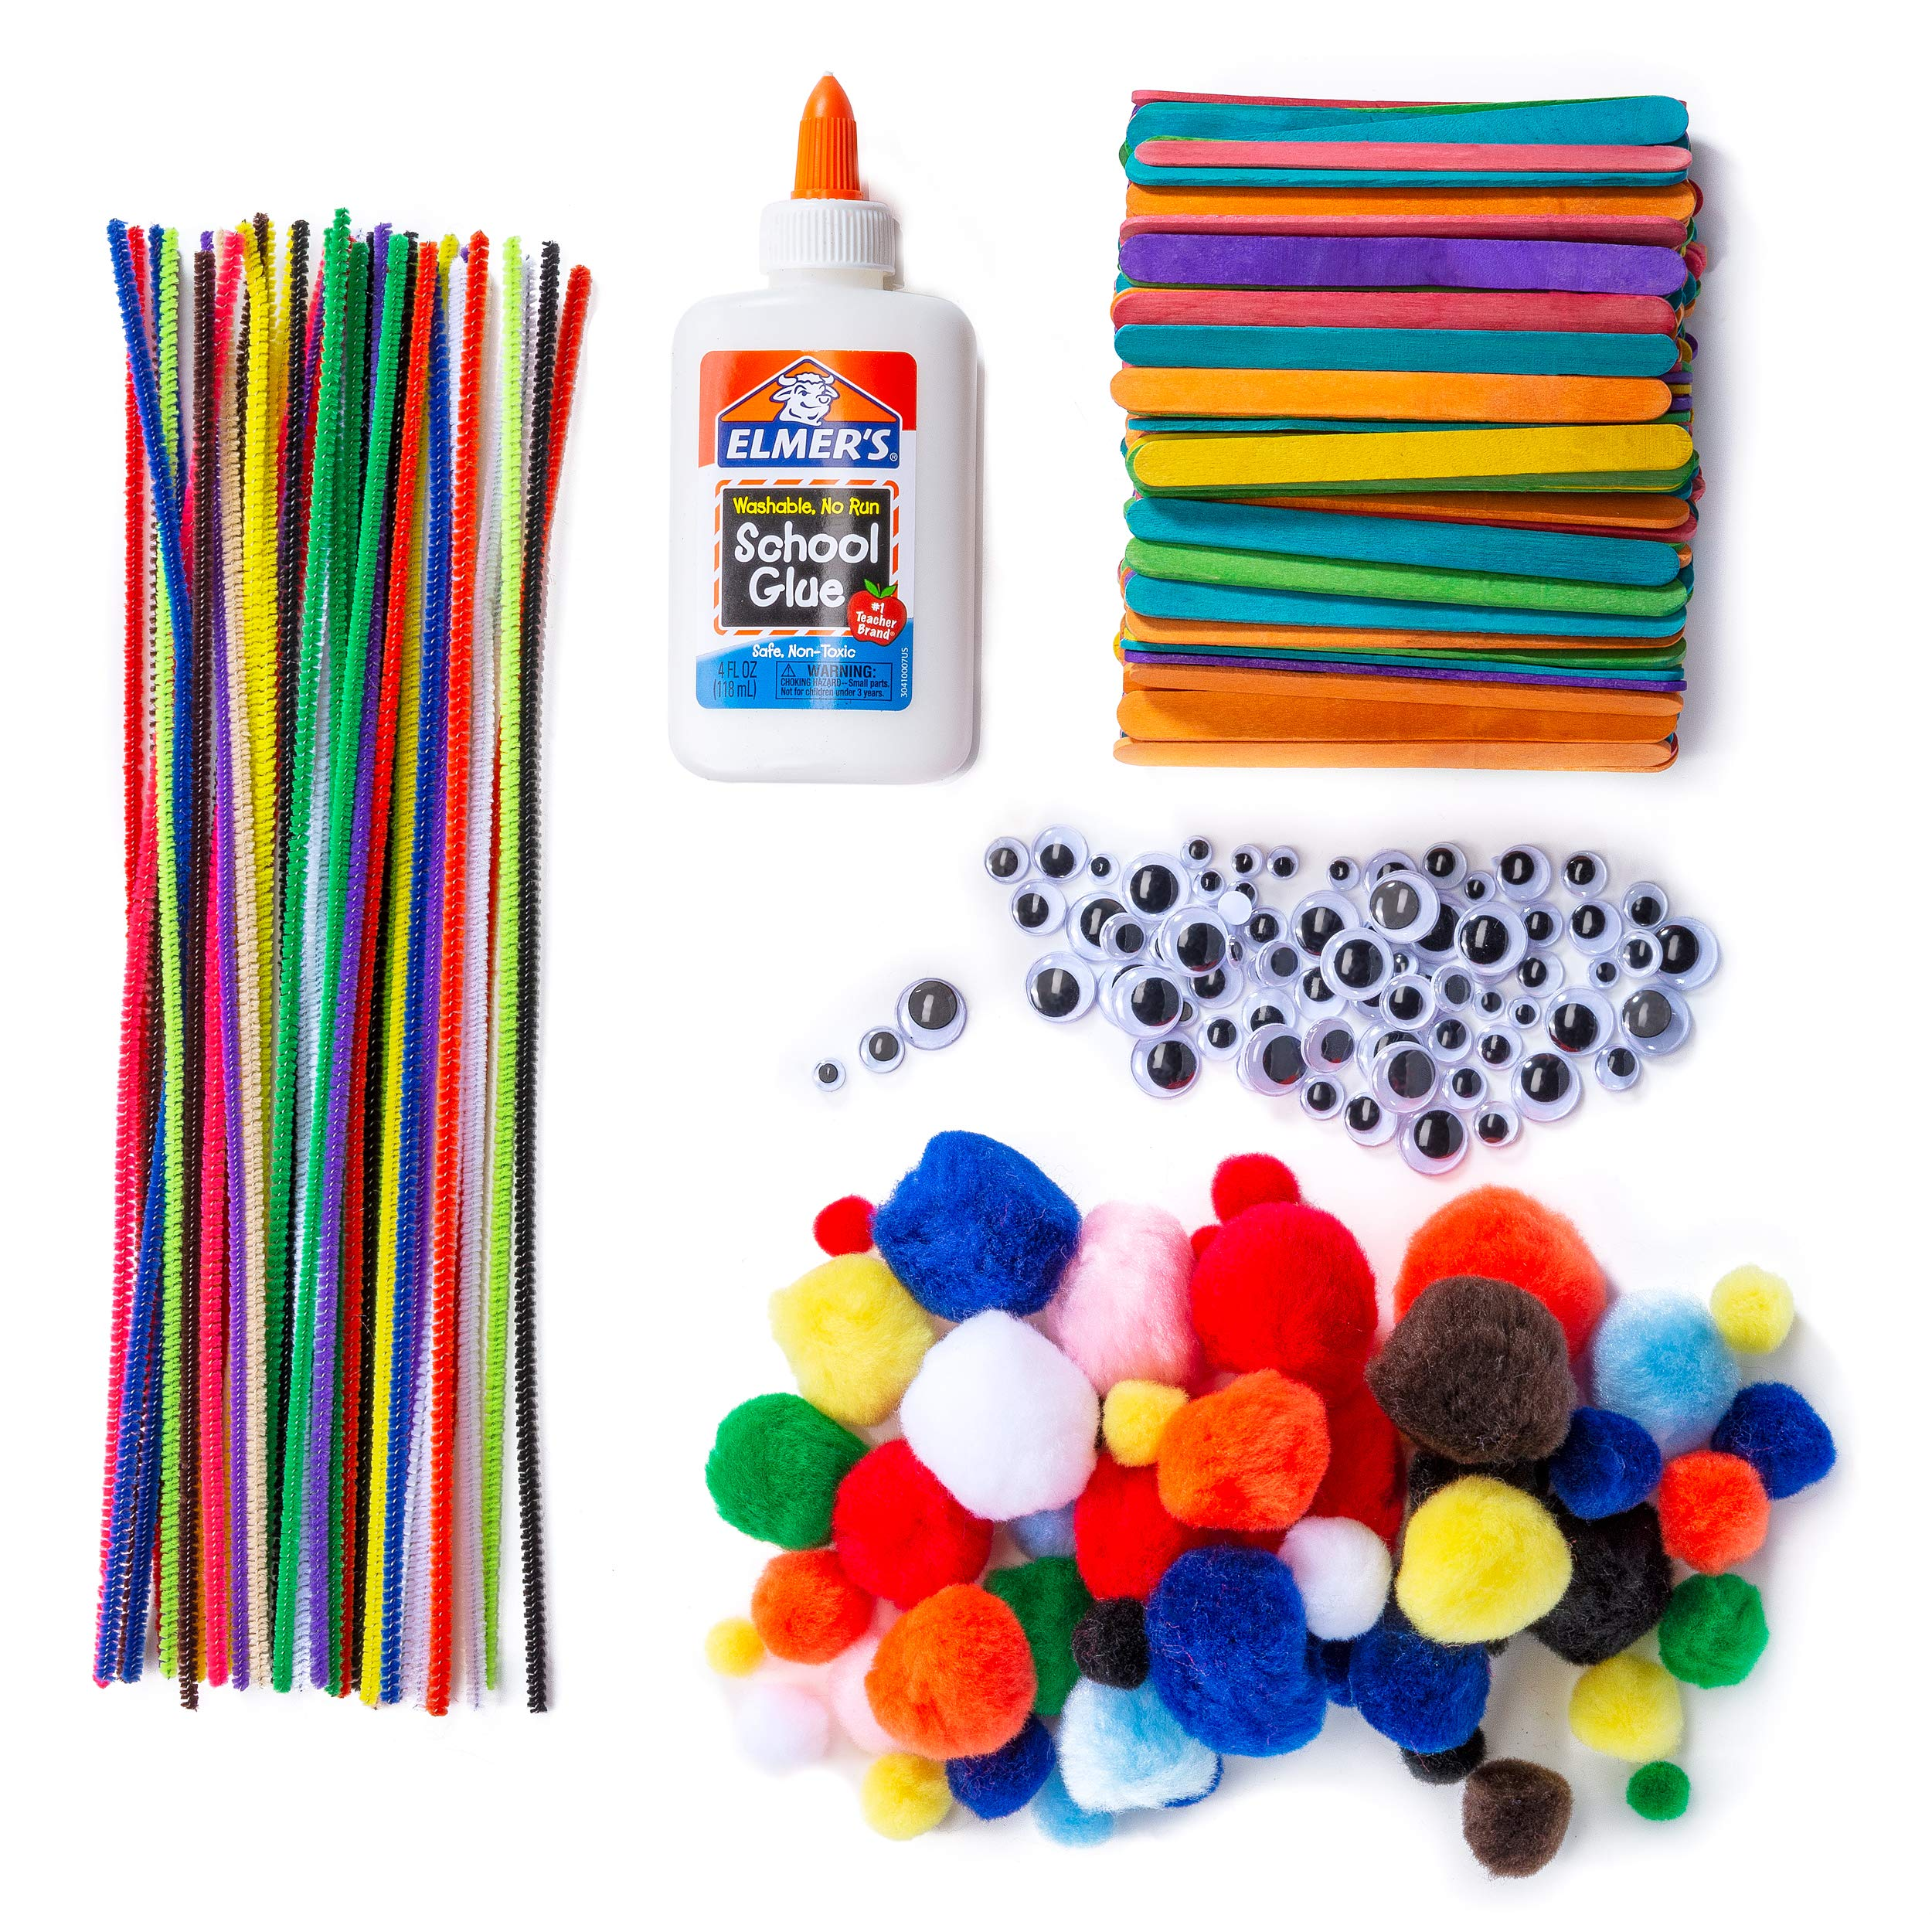 Chenille Stems Pipe Cleaners, Pom Poms, Craft Sticks, Wiggle Googly Eyes, Assorted Colors-400 Piece Set, With 1 Washable School Glue 4 Oz - Value Set for DIY Crafting, Fun Art Craft Projects and Decor